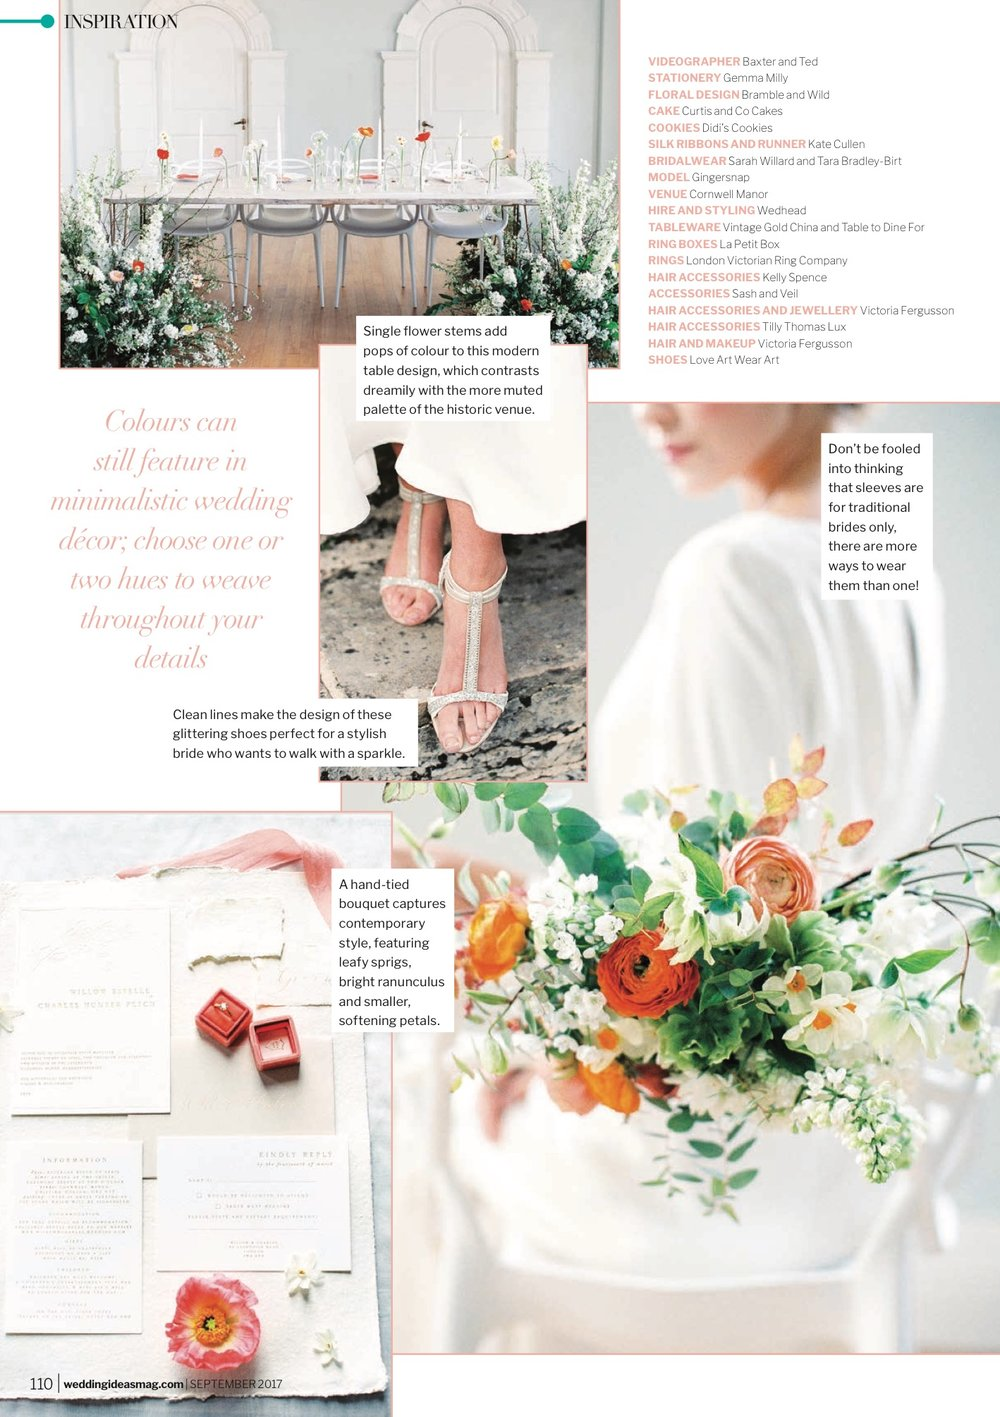 Sarah Willard Featured Wedding Ideas Magazine 1